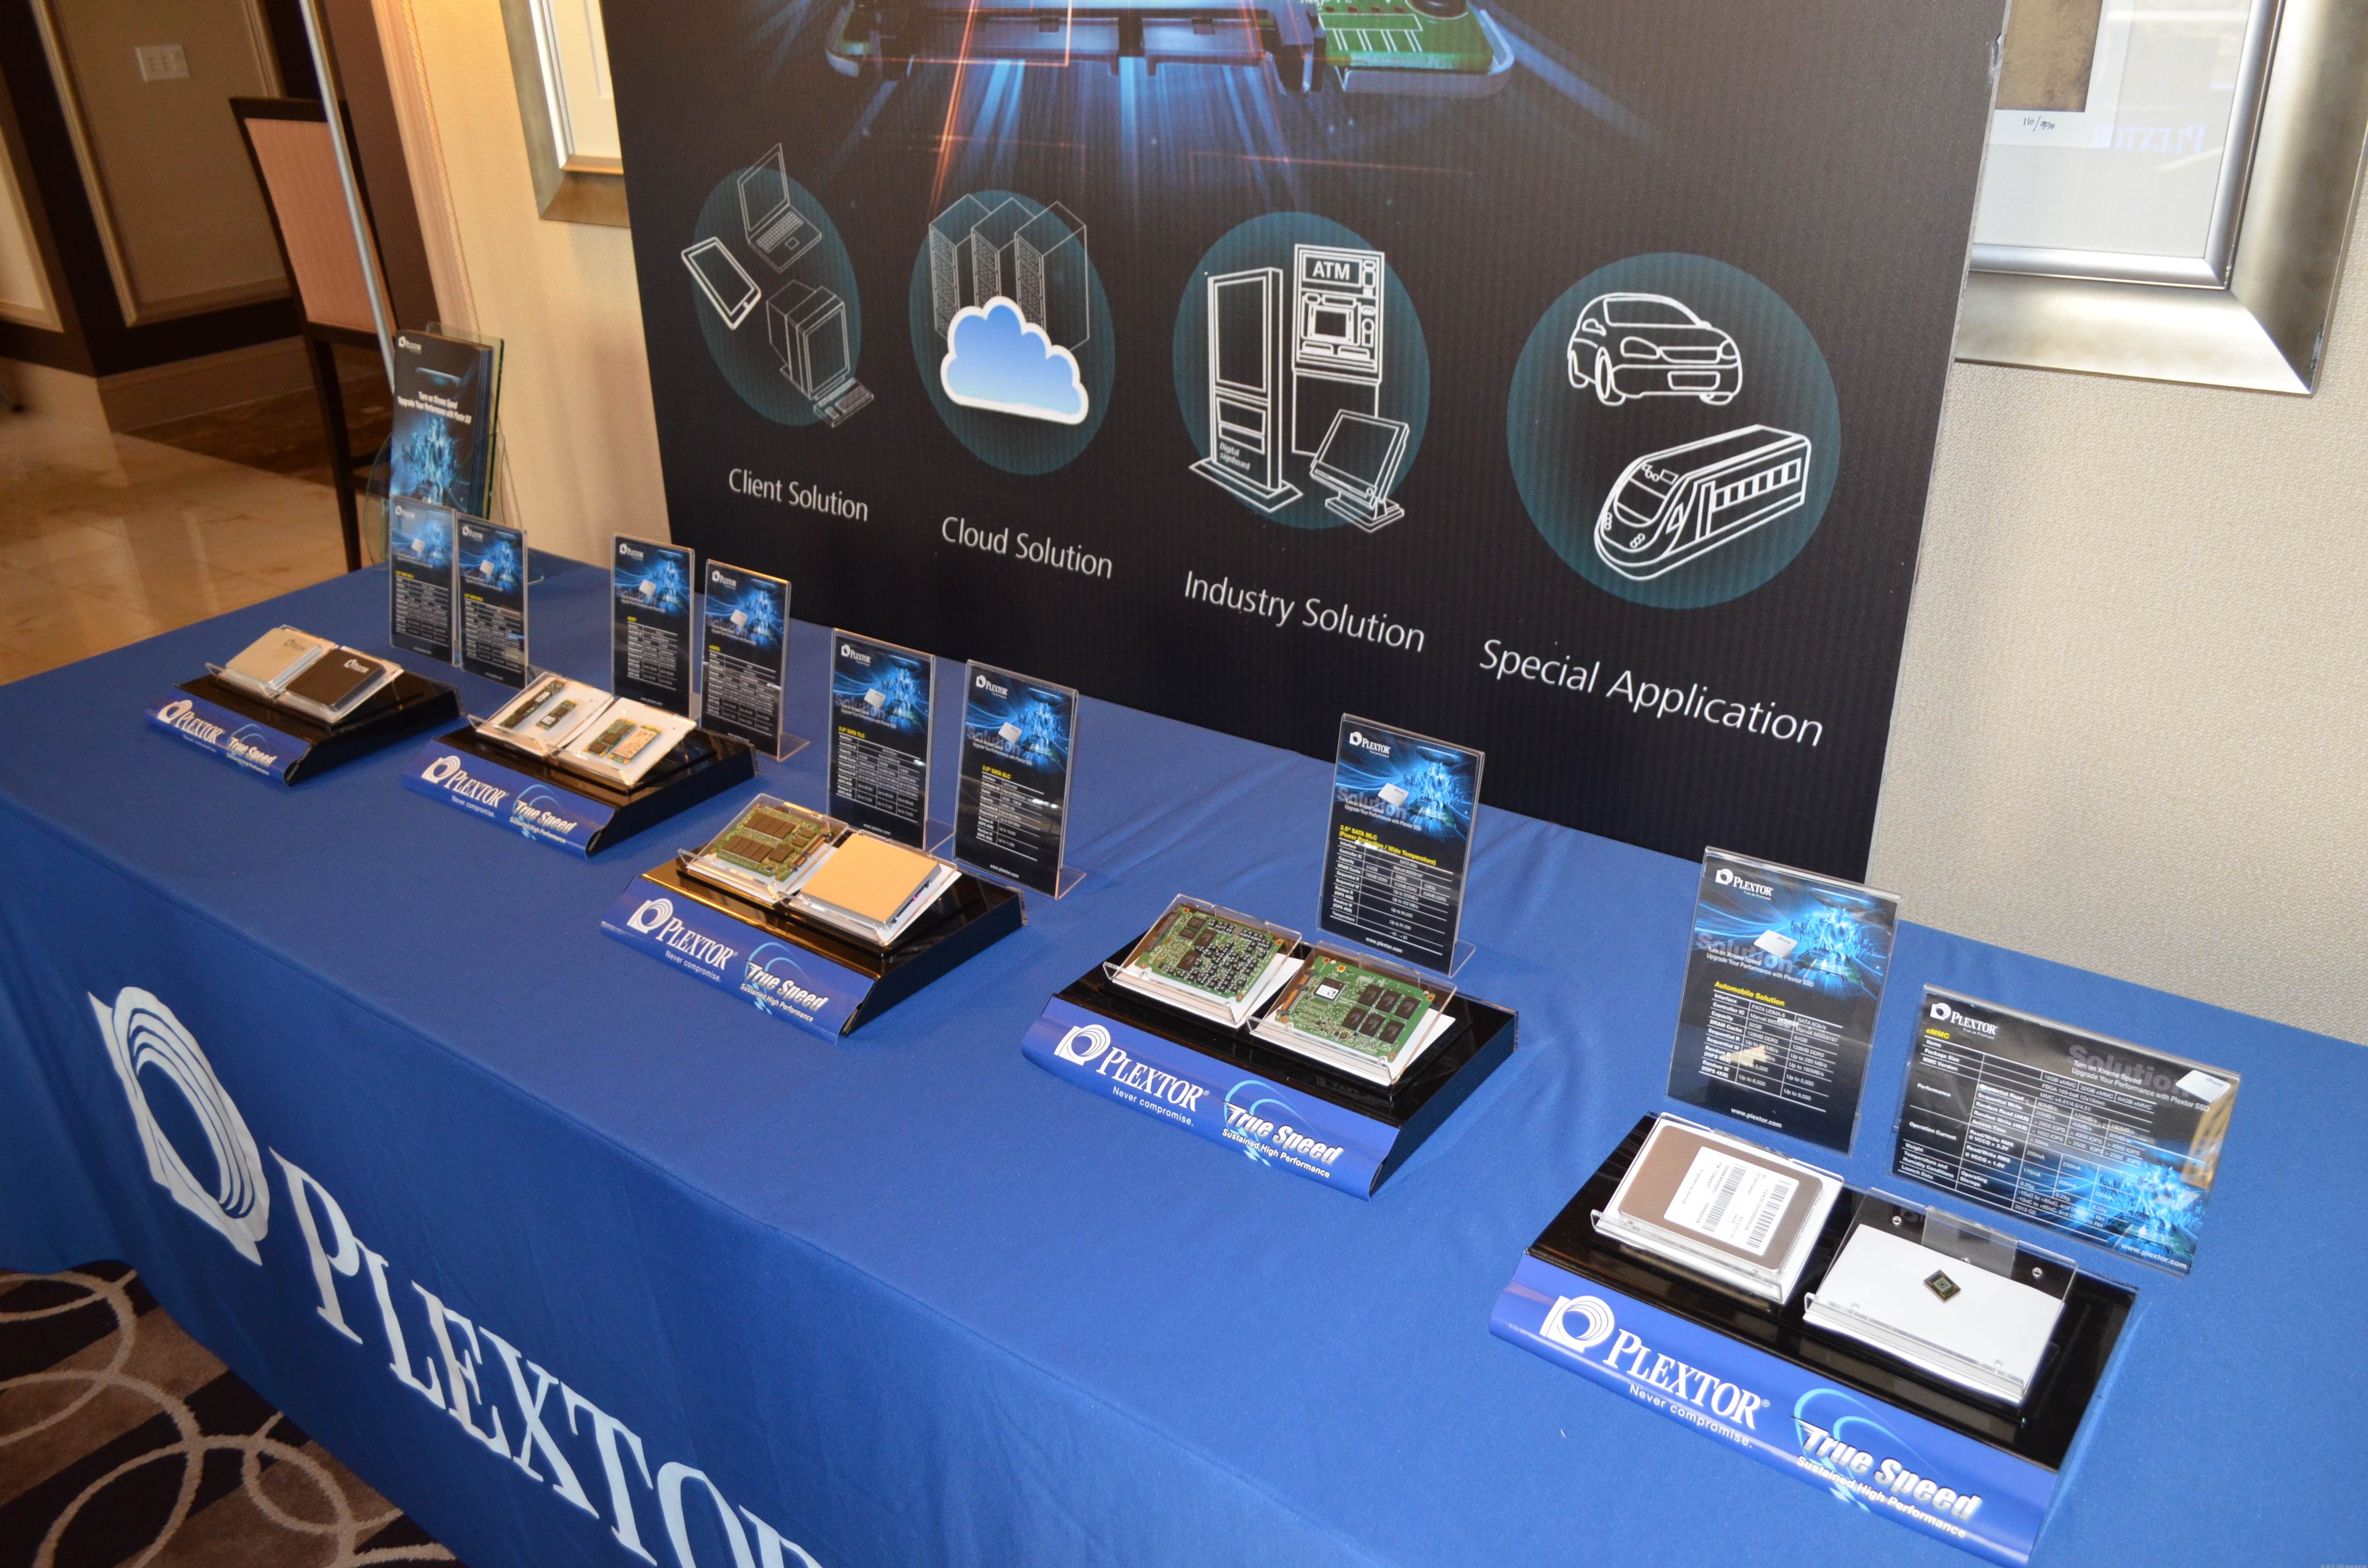 Plextor SSDs being showcased at CES 2013.